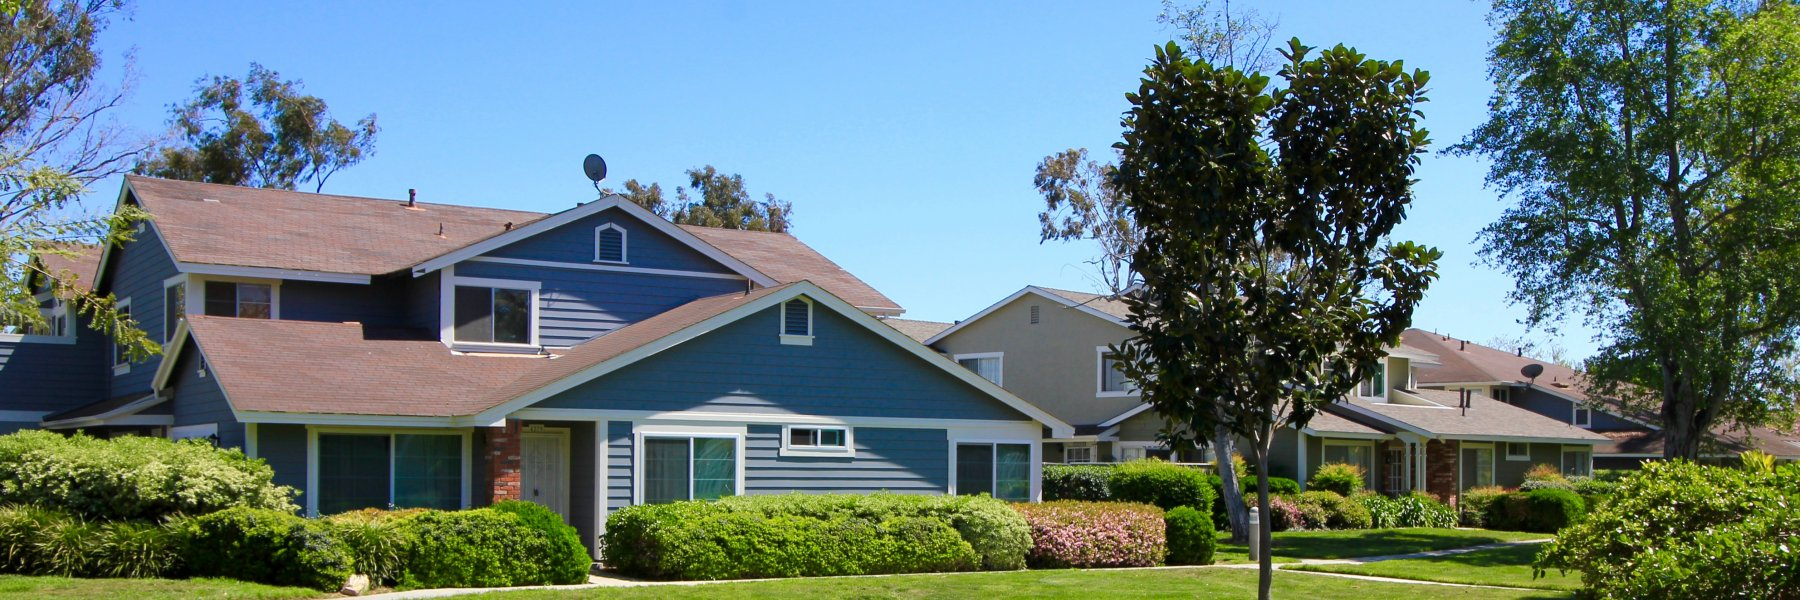 Whelan Ranch is a community of homes in Oceanside California